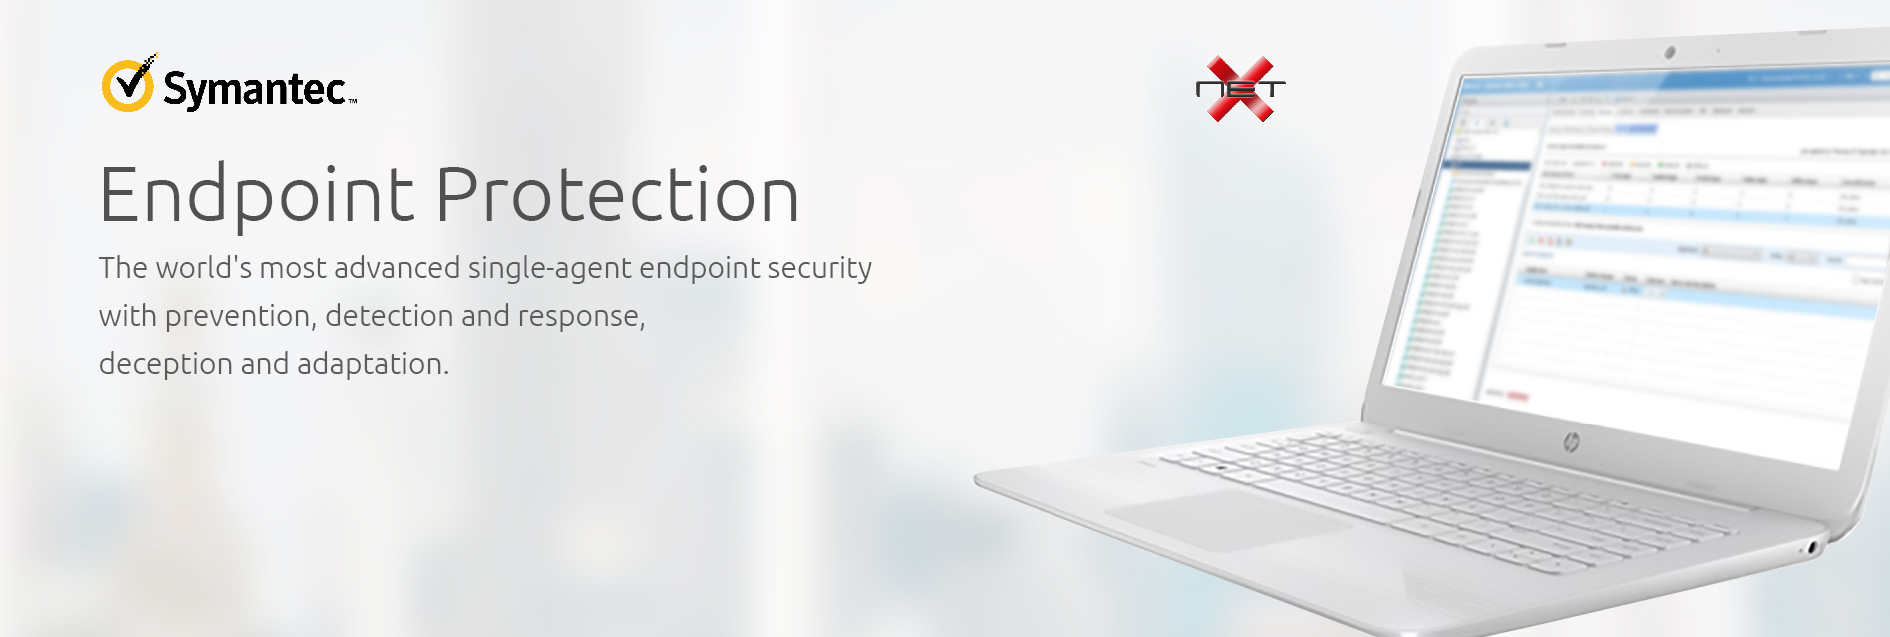 netx-symantec-endpoint-protection-banner